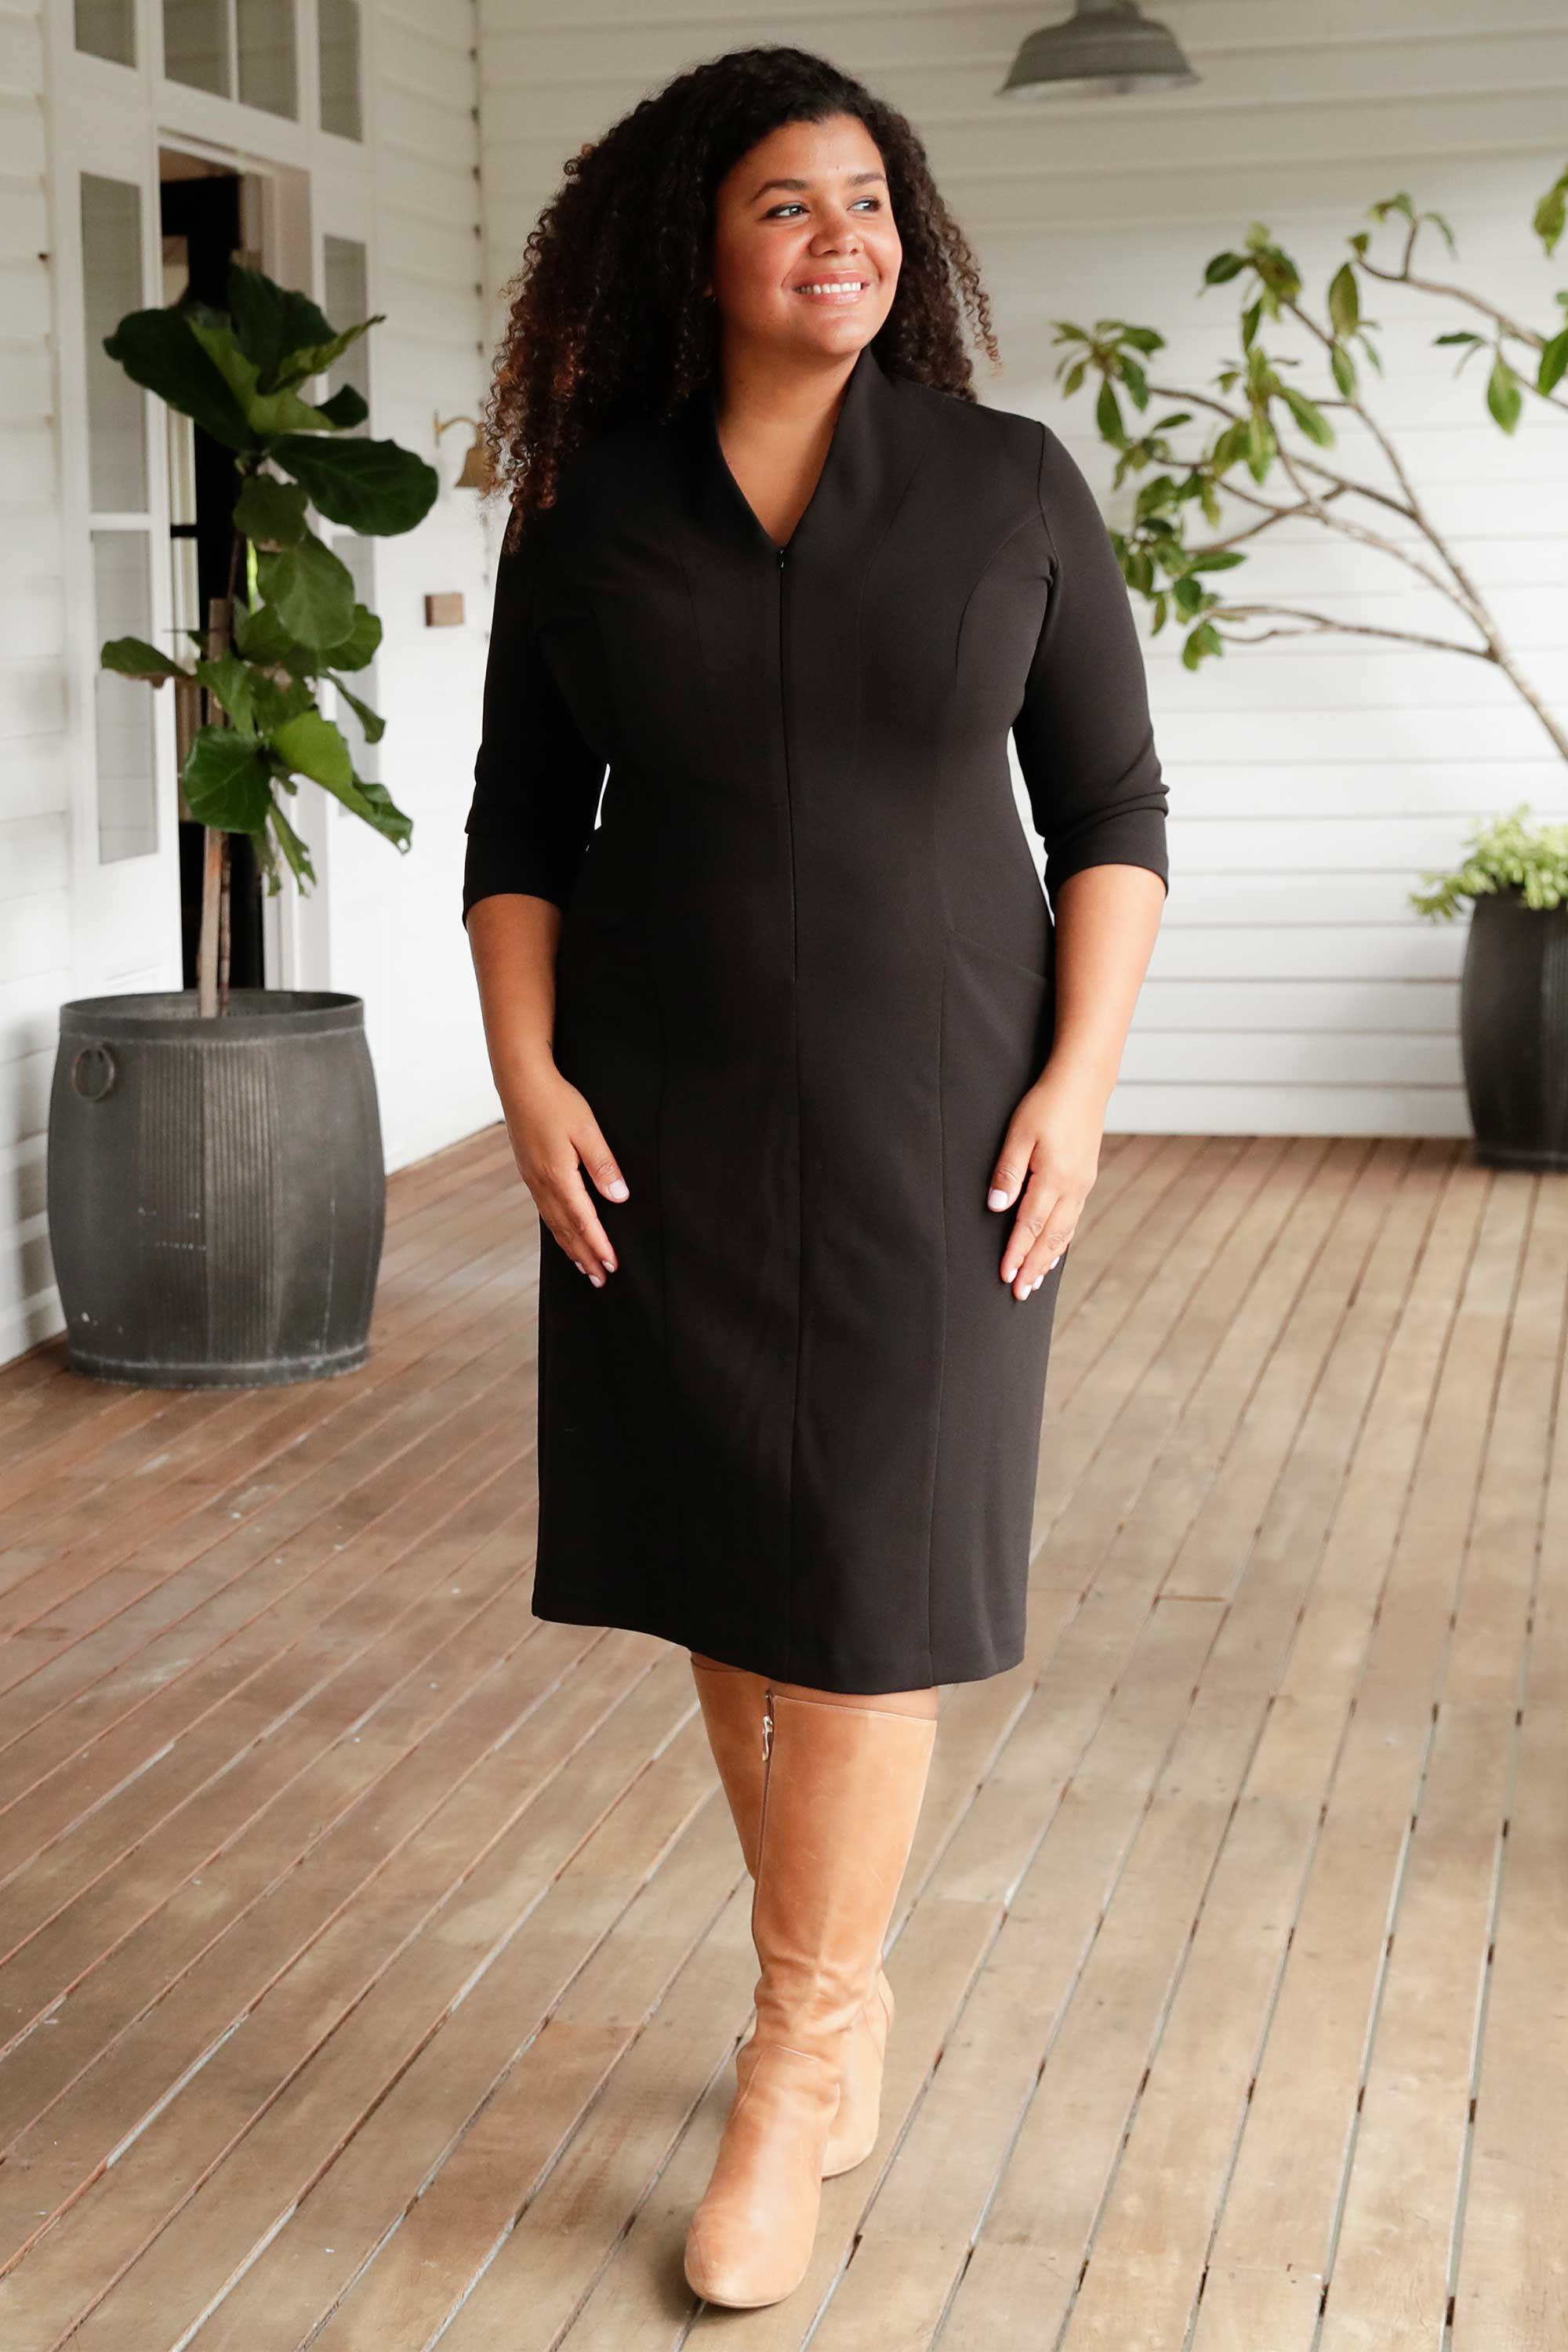 Leina & Fleur have Designed the Asta Dress in Black for the Professional Woman. Comfortable and Stylish Dress for Work. Leina & Fleur are Proudly Australian Made and Carry Sizes 8 to 24.